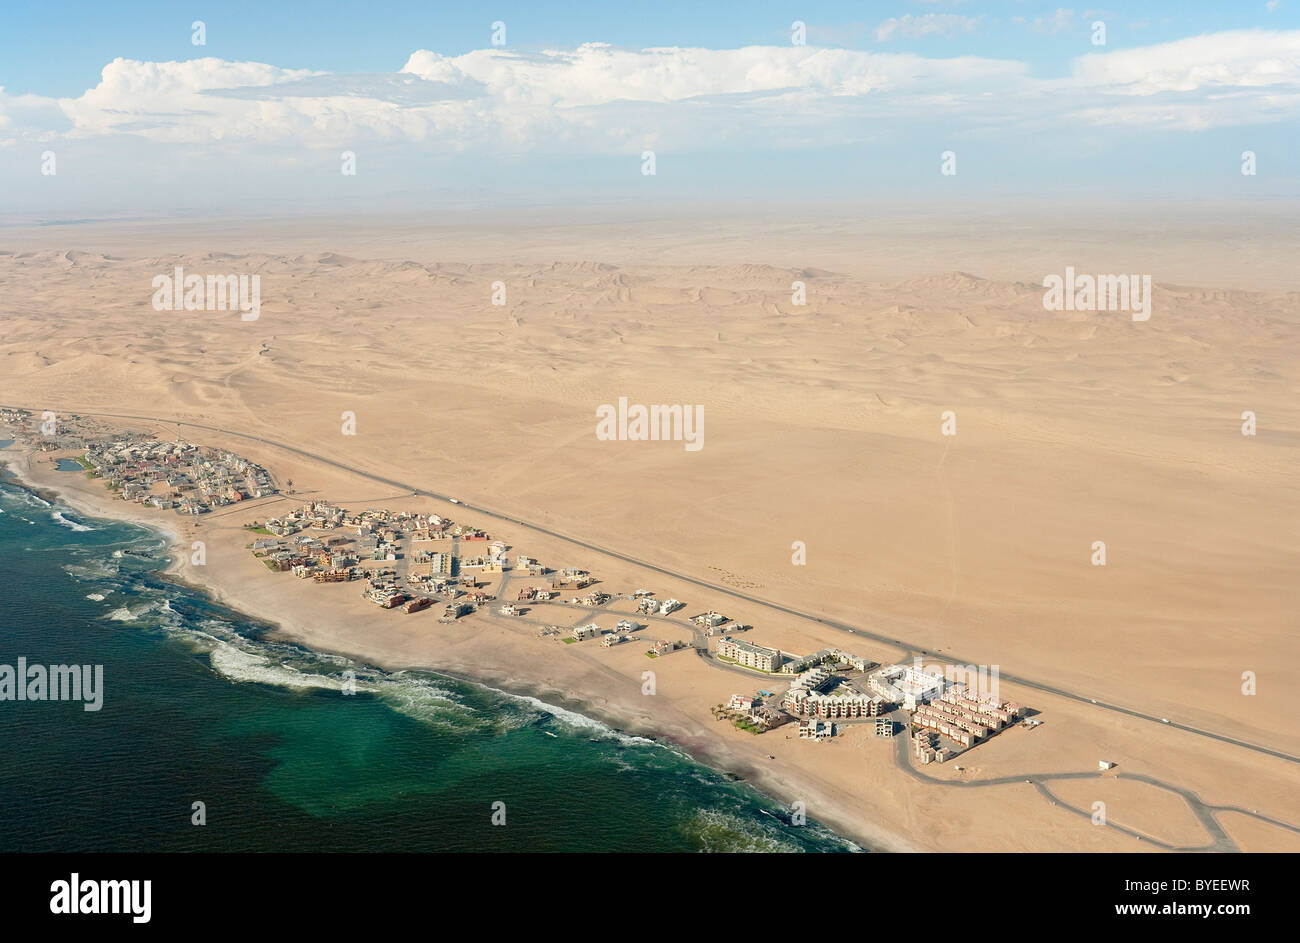 Aerial view of holiday resorts along the road from Swakopmund to Walvis Bay between Namib Desert and Atlantic Ocean. - Stock Image